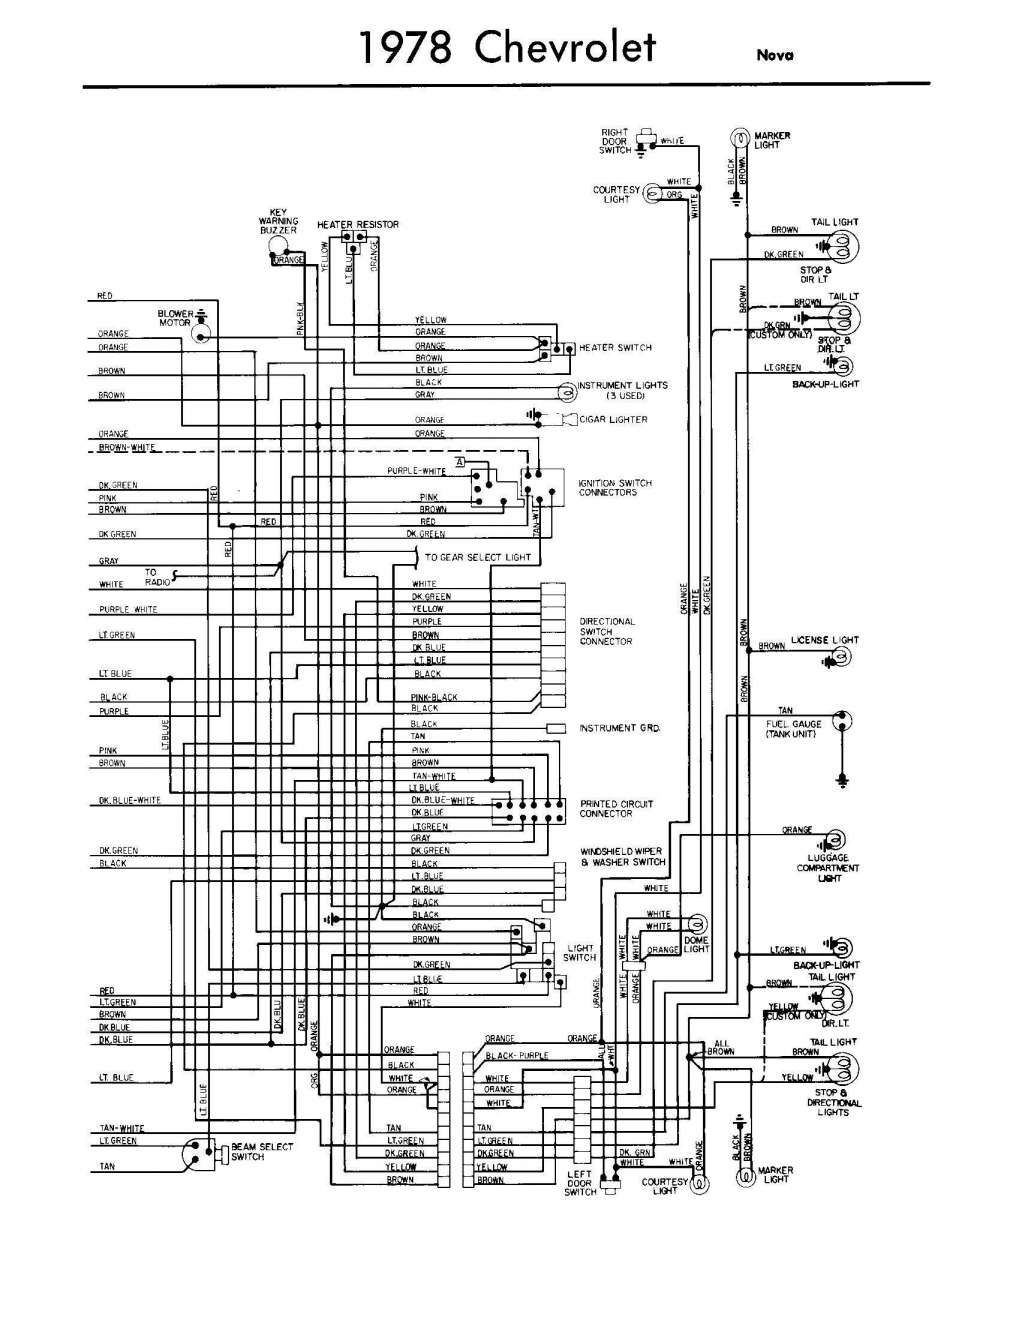 78 Chevy Truck Wiring Diagram And Block Diagram Drawing Images Free Download Wiring Diagrams Chevy Trucks Wiring Diagram Electrical Wiring Diagram